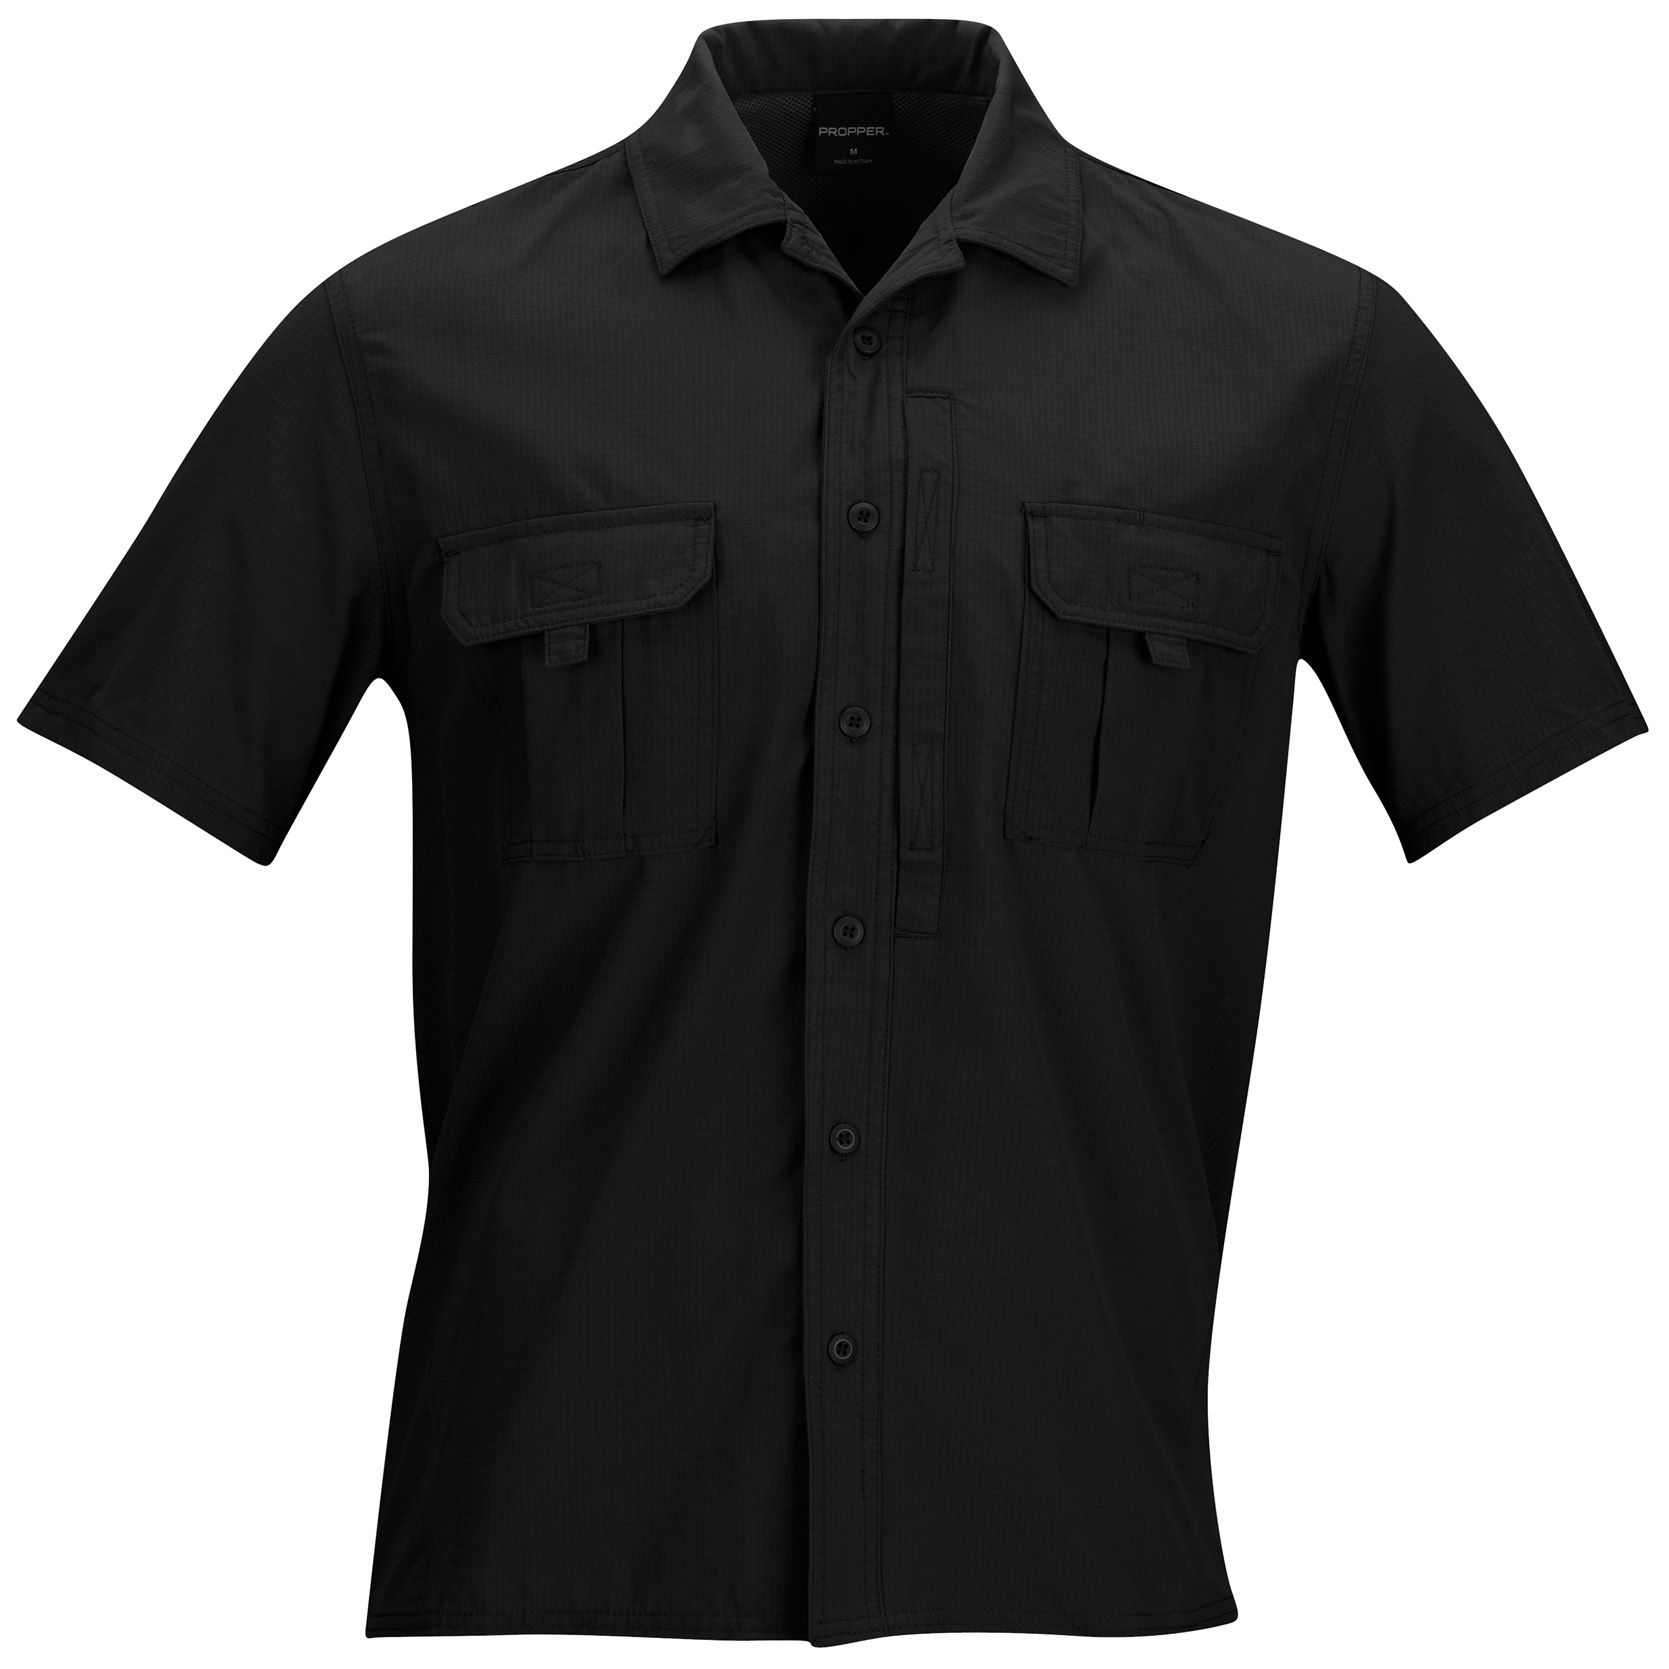 Propper Sonora Short-sleeved Tactical Shirt. Proof positive that staying cool on duty isn't Mission: Impossible. Built to withstand the brutal heat of the Sonora Desert, this Tactical Shirt combines the cooling performance of lightweight fishing apparel with full tactical function. Breathable nylon ripstop wicks moisture away from your body, while strategically placed vents keep the air circulating around your core.Good stuff:4 oz. 100% polyester nylon ripstop fabric is comfortable, durable and moisture-wicking, keeping you dry and comfortable Active 360 degrees vents for maximum airflow Strategically-placed chest pockets with fast-tab loops for easy, one-hand access Dual-layer fabric panels on hips for added durability in high-wear areas Waist zipper pocket for secure storage Full button front with sharp point collar, flat bottom hem Additional side-access chest pocket with hook-and-loop closure Machine wash / dry. Imported. State Color and Size, as available in the Shopping Cart. - $32.99